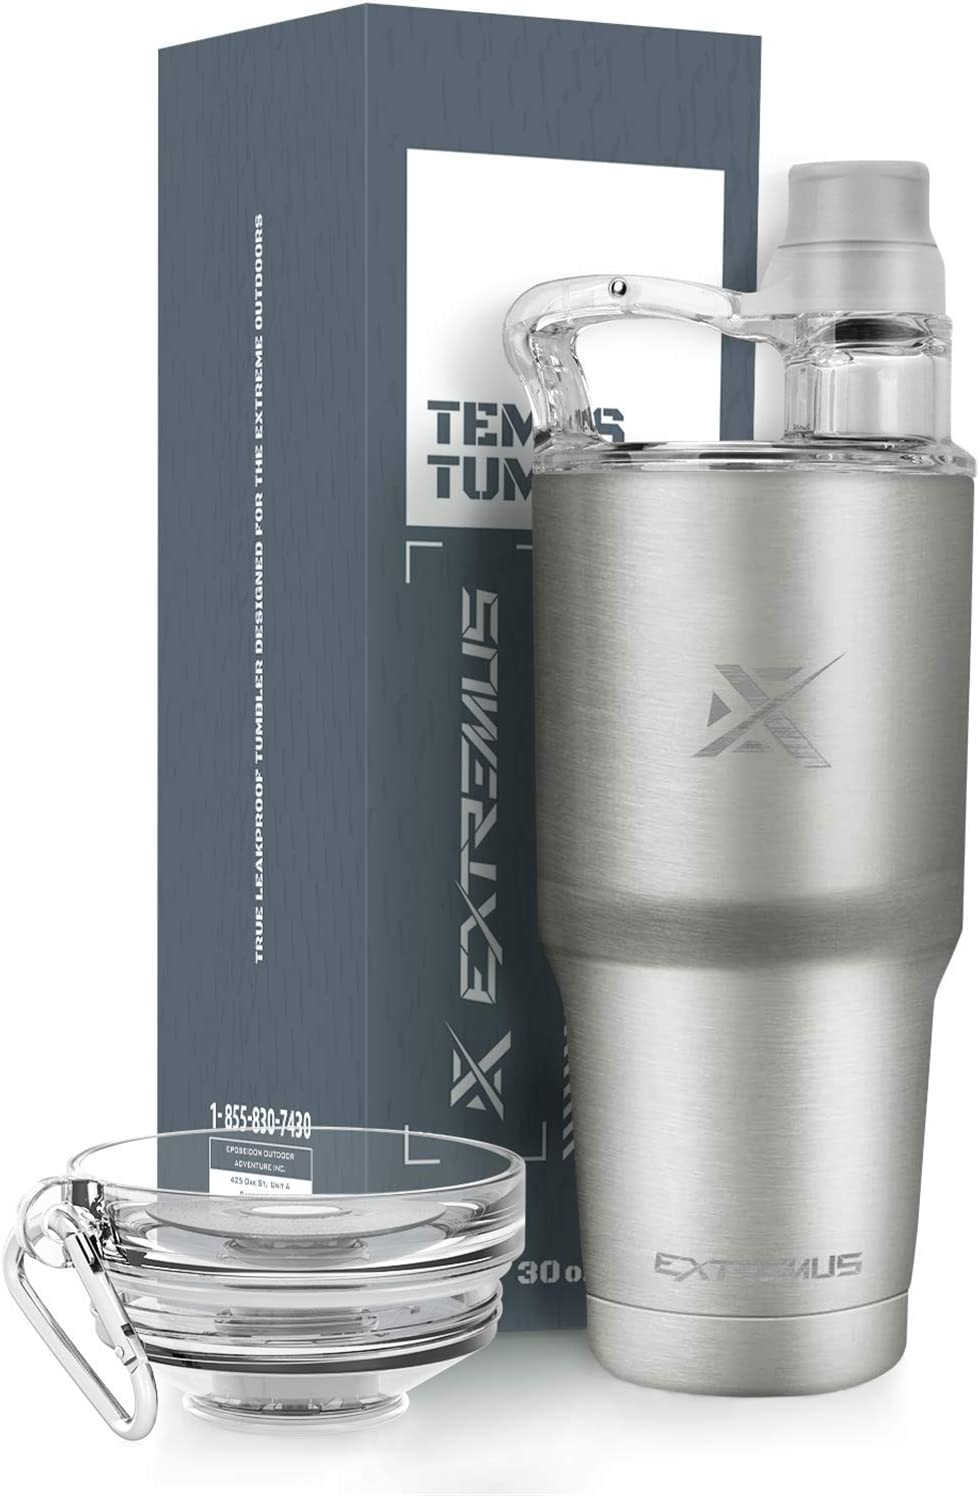 Extremus Temps Stainless Steel Vacuum Insulated Tumbler with 100% Leak-Proof Travel Coffee Mug Lid and Water Bottle Lid(30 oz,Simple Stainless, 2 Lids)